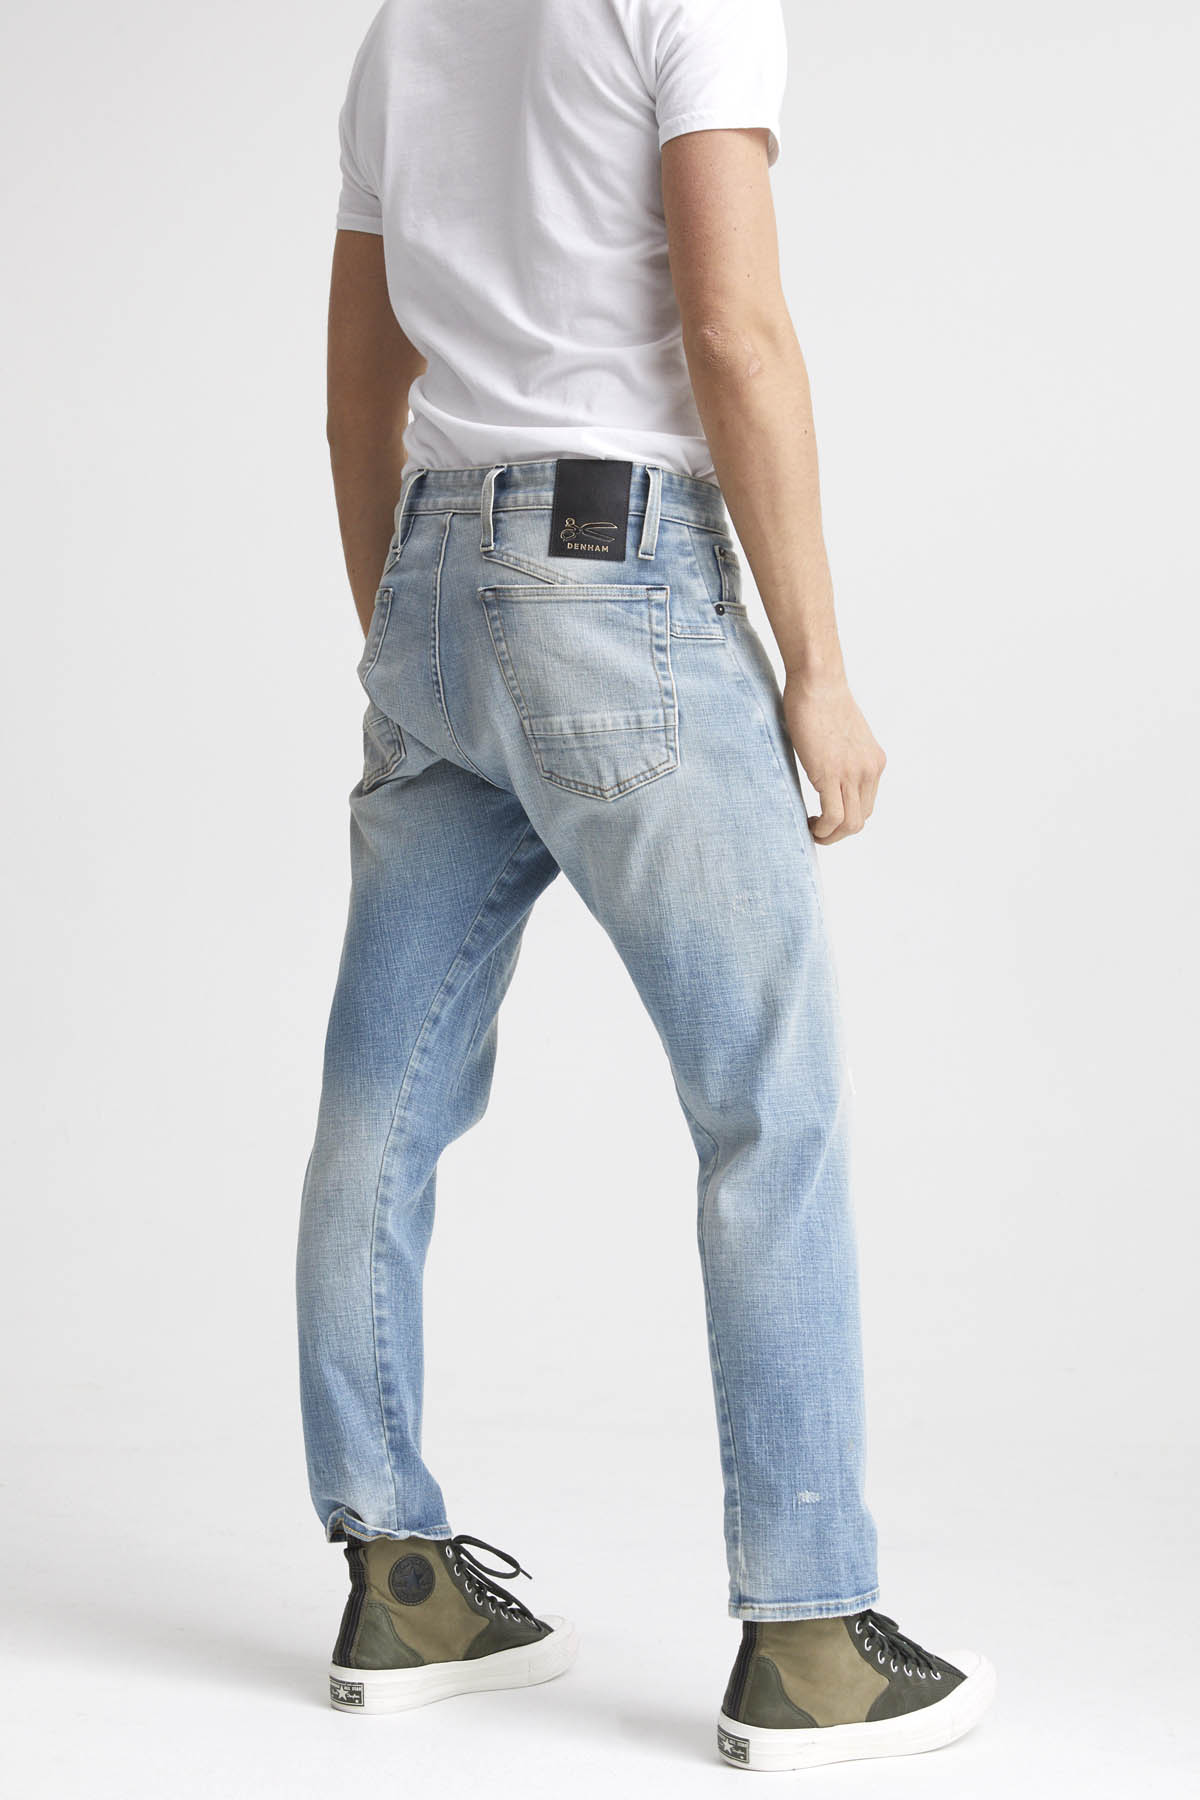 Kinetic - Wide Tapered Fit Jeans - - Back